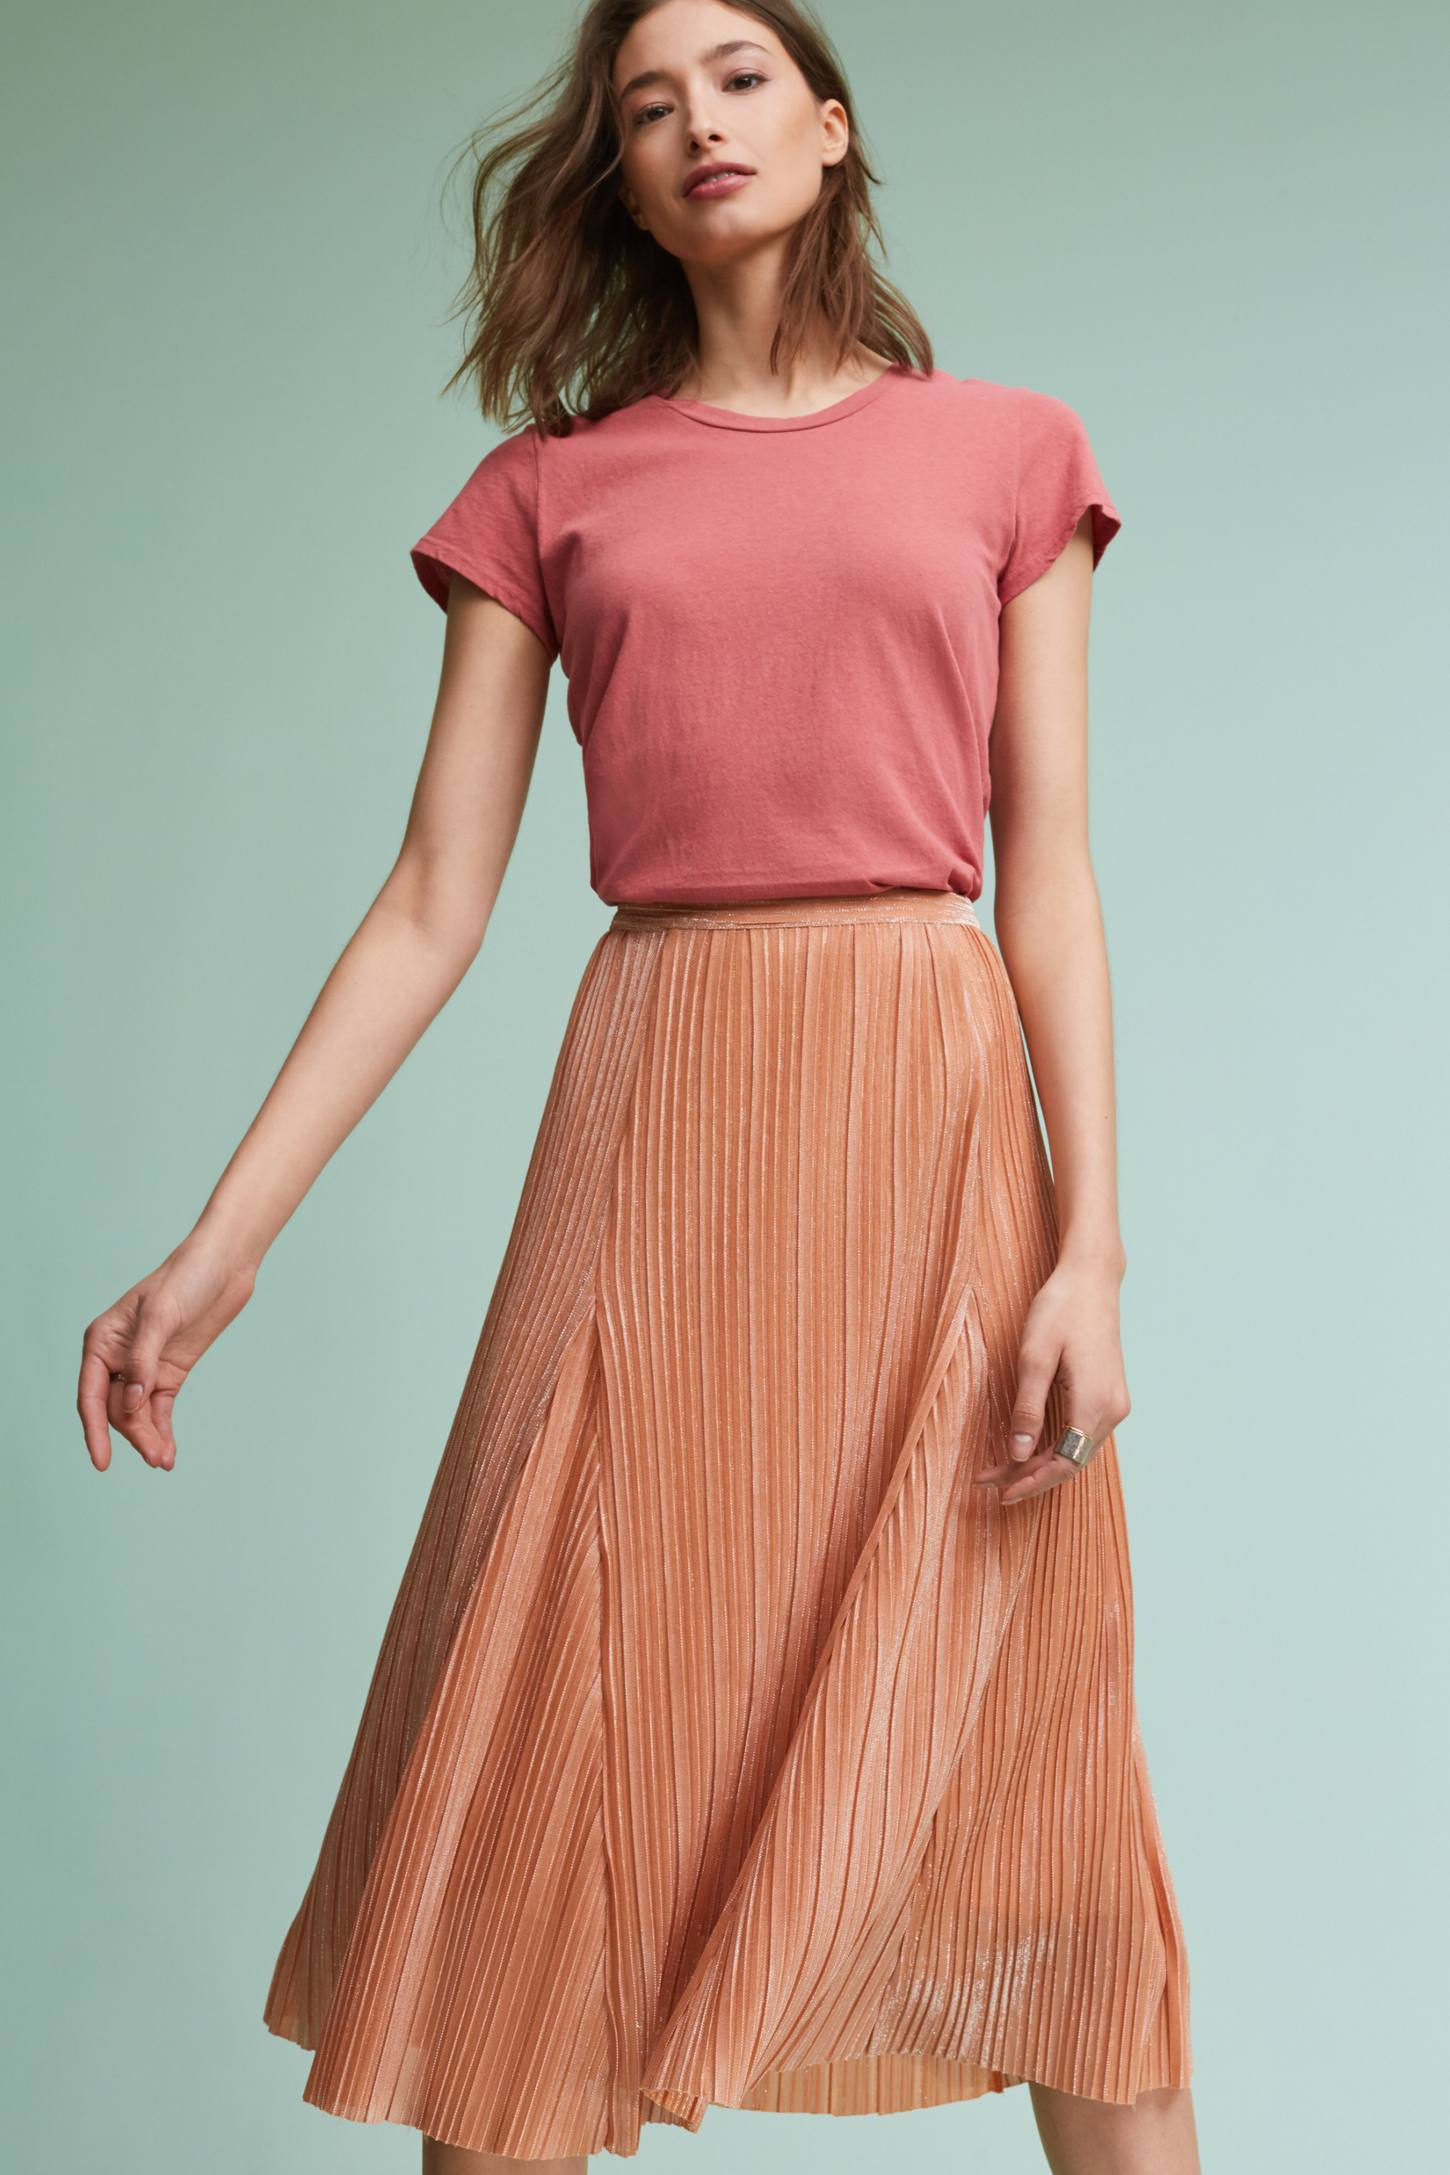 Pleated Metallic Skirt | Anthropologie